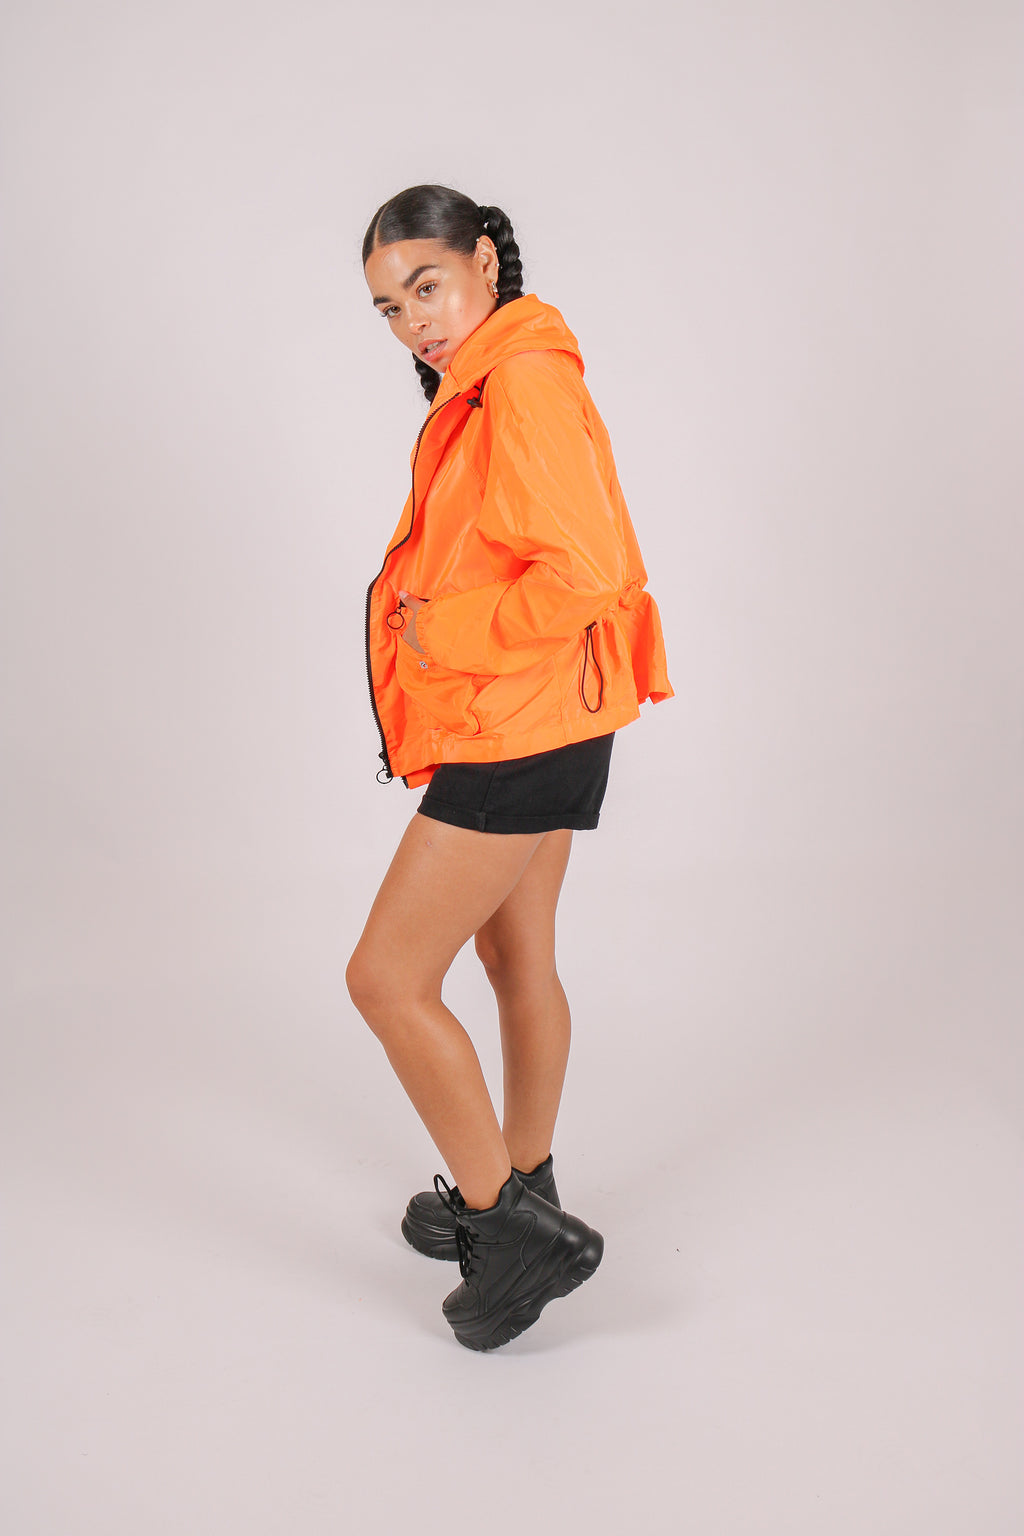 Hey, Fancy Pants 'Neon Orange Wind Breaker Jacket'